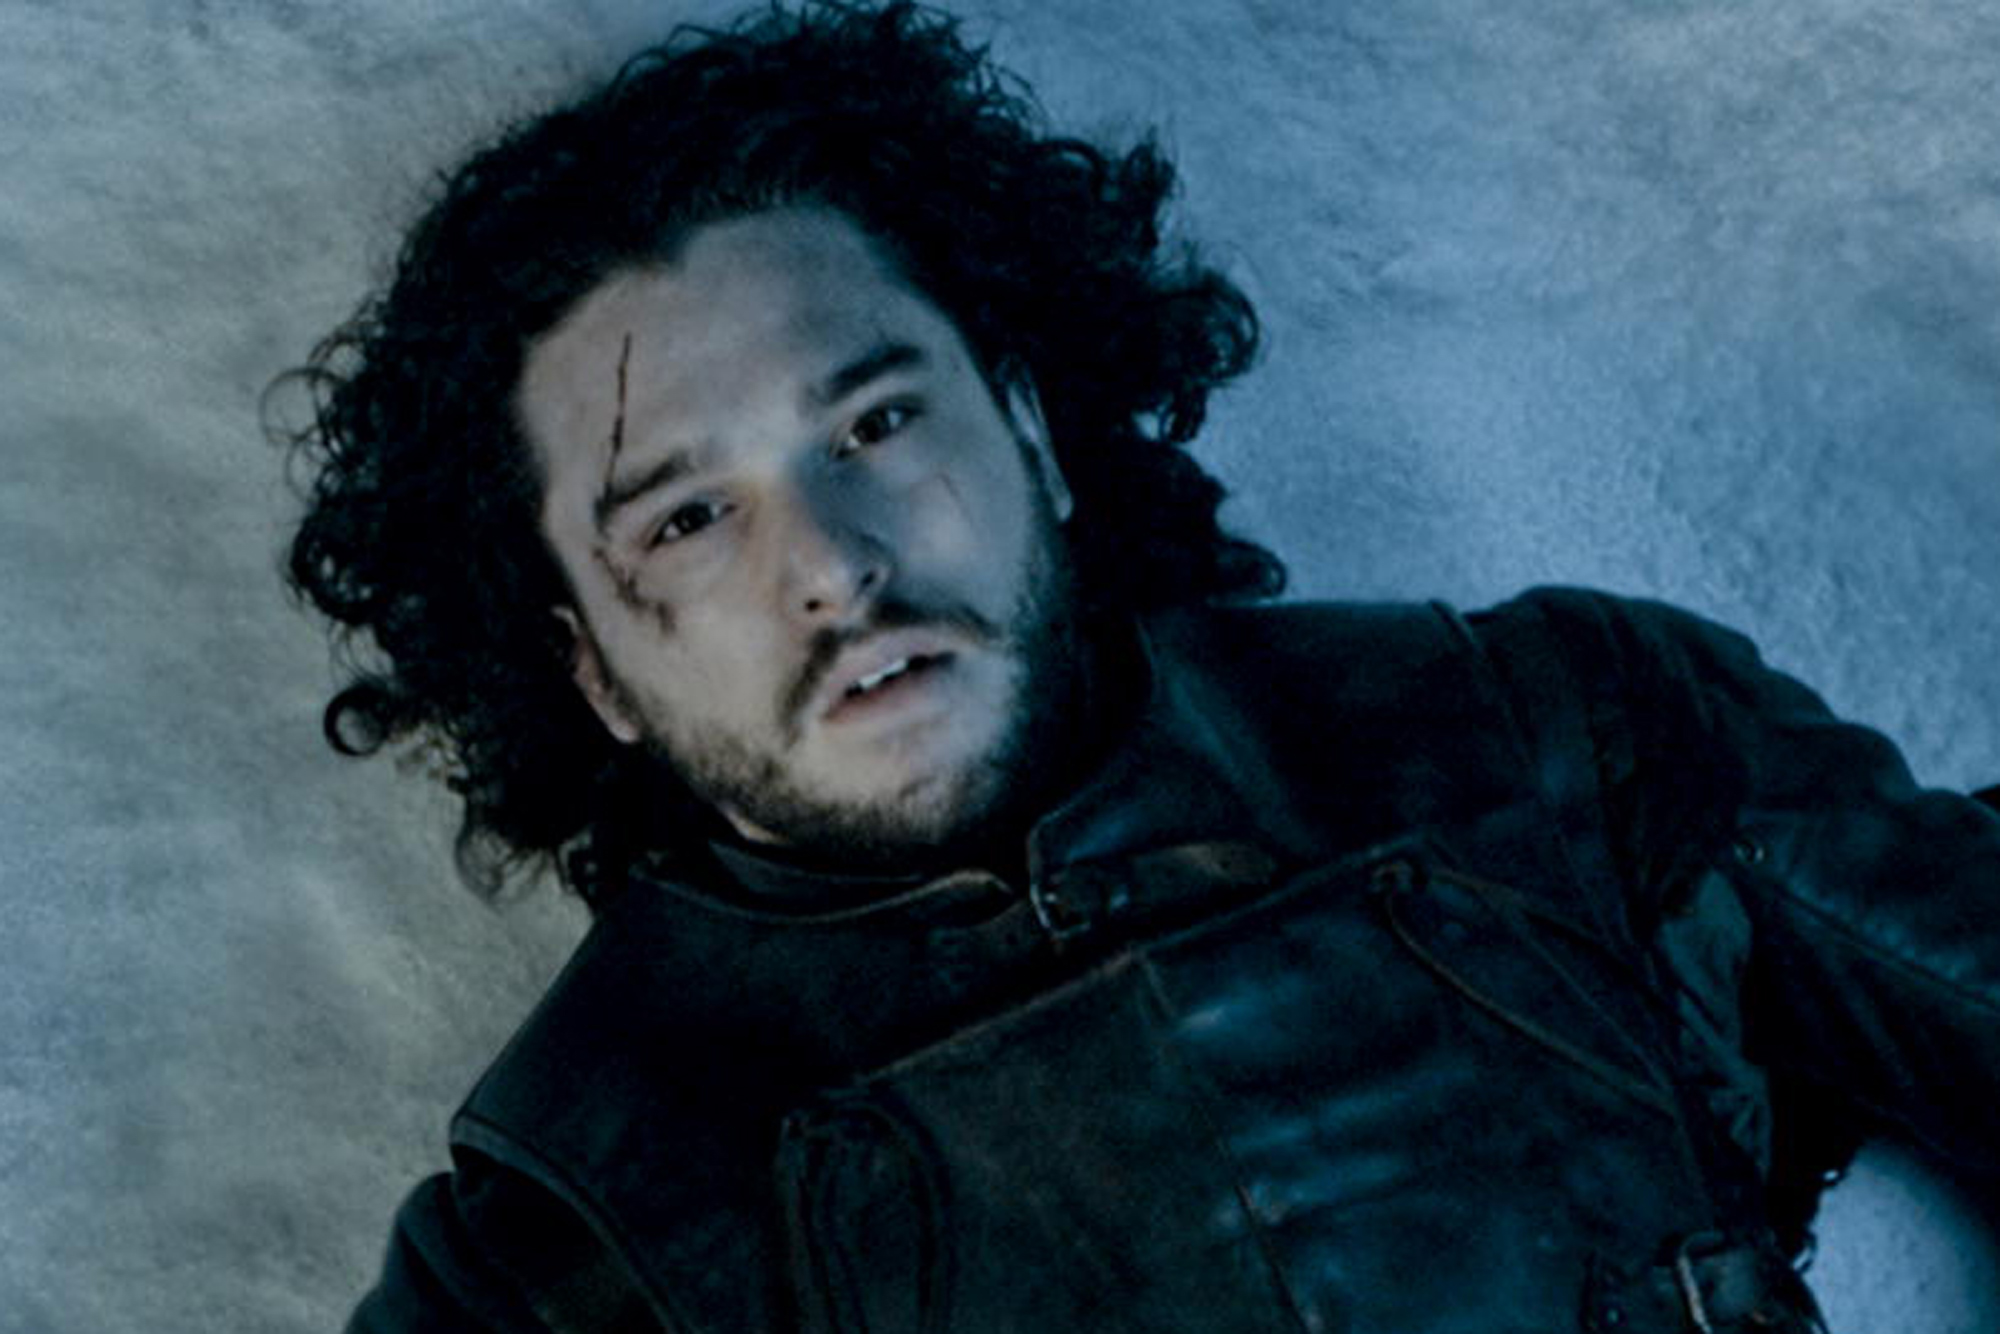 Apparently you can tell whether Jon Snow is dead or not if you look really closely at his eyes —because science